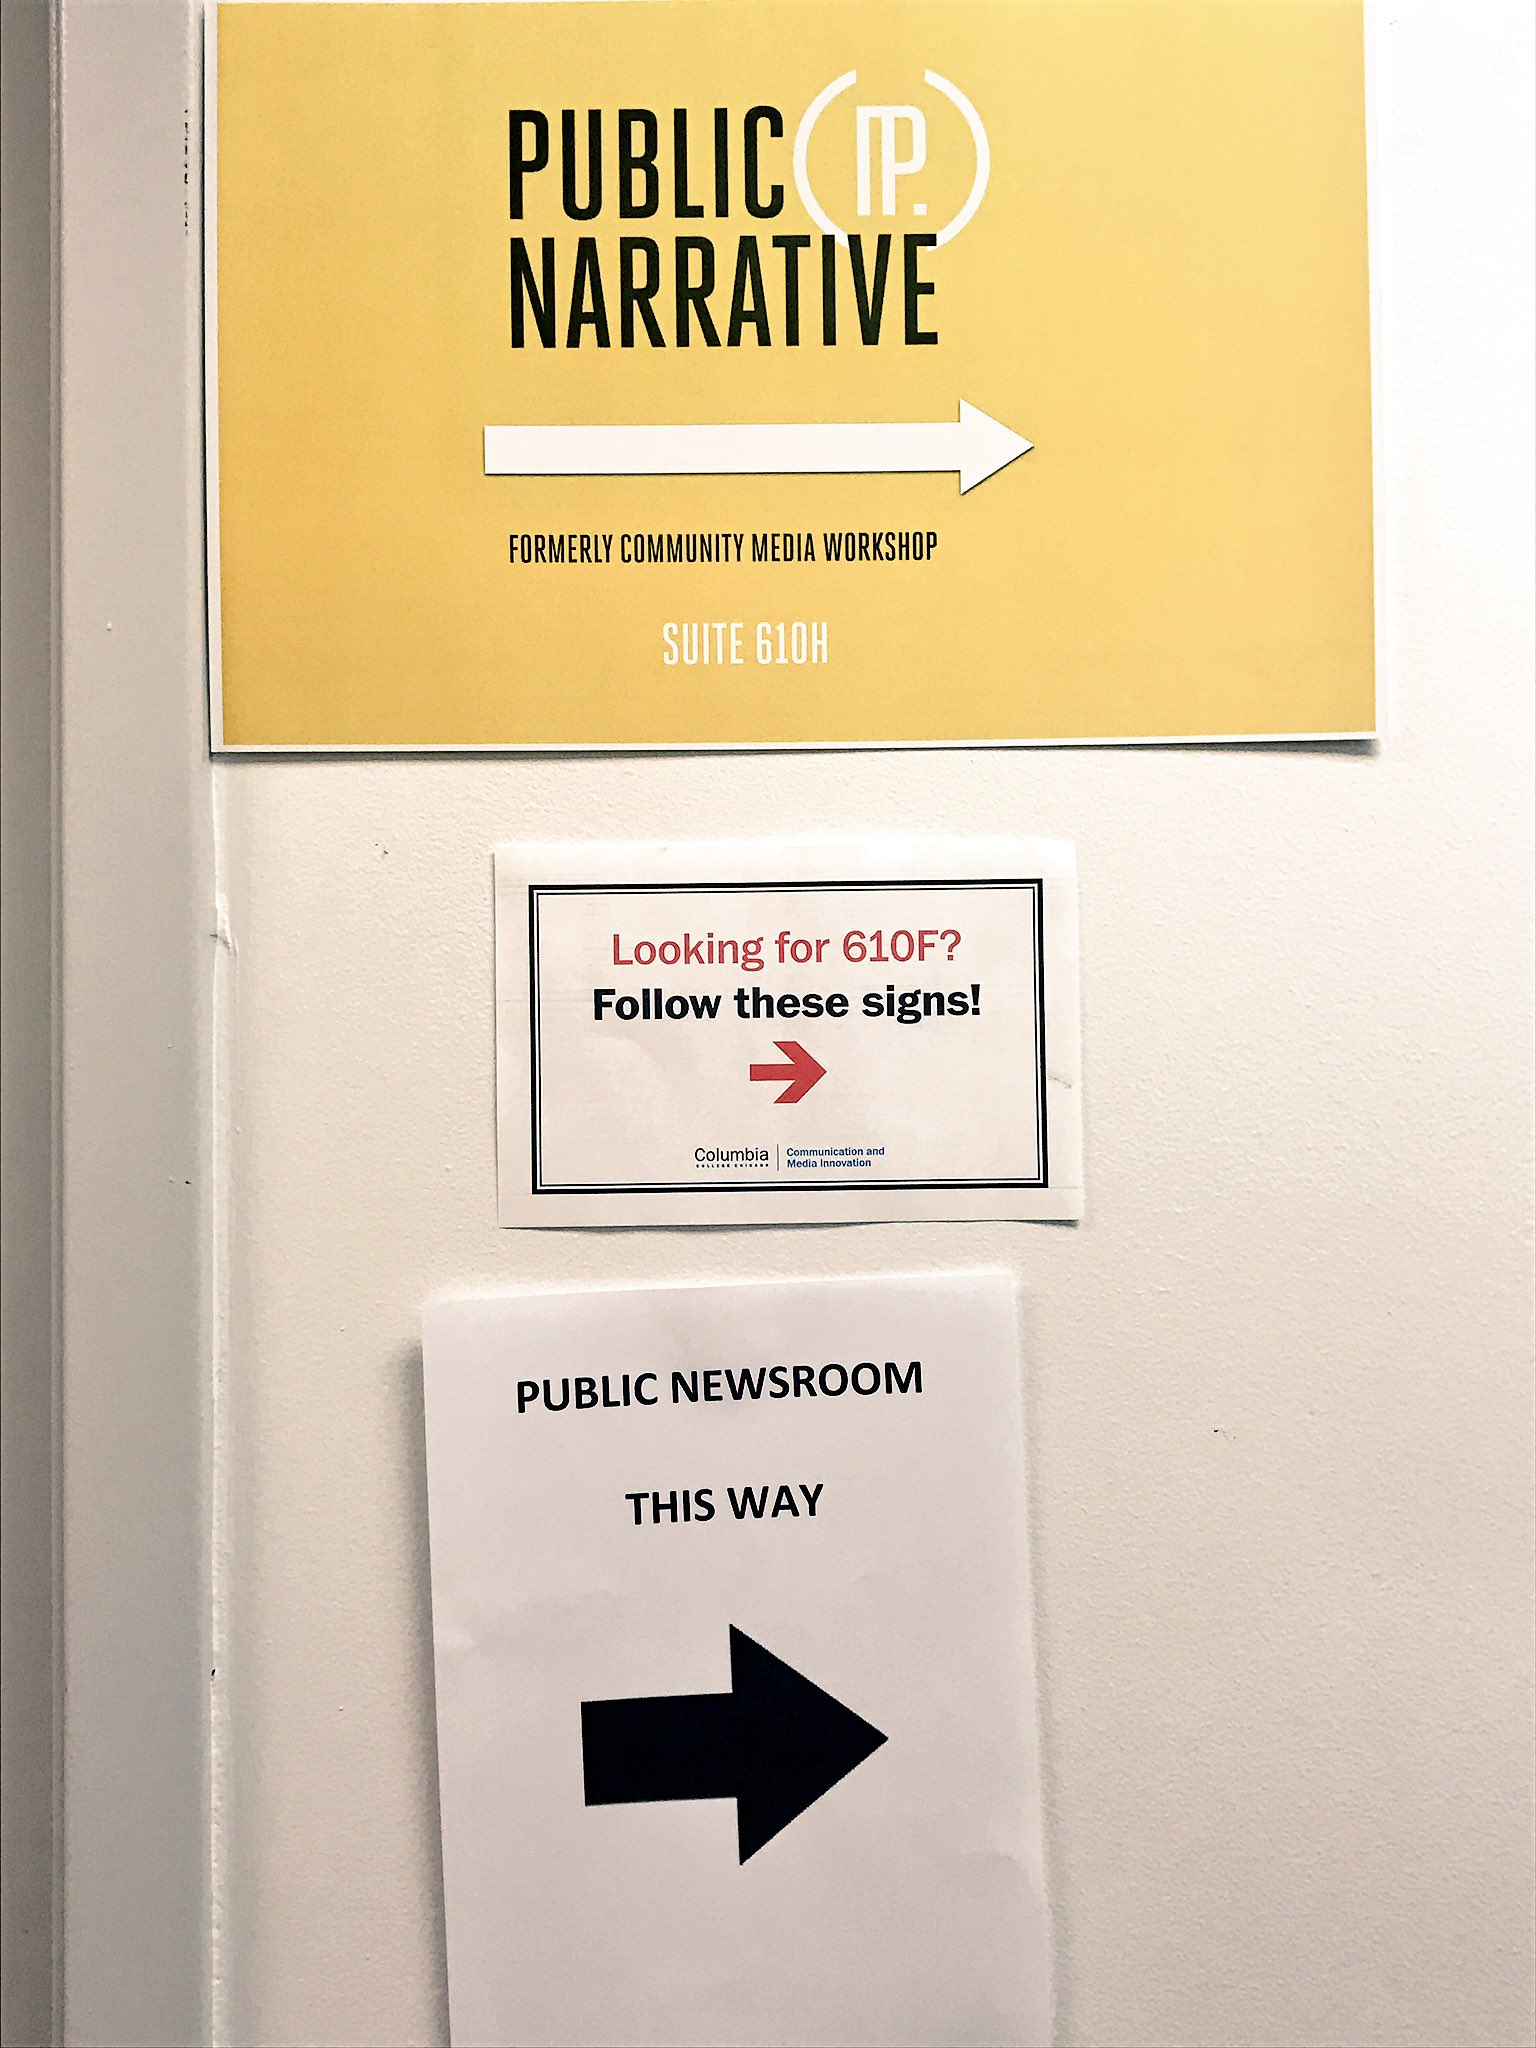 Follow the signs. @city_bureau and @SouthSideWeekly's #publicnewsroom is at @PublicNarrative tonight. https://t.co/XBrF8NnUE1